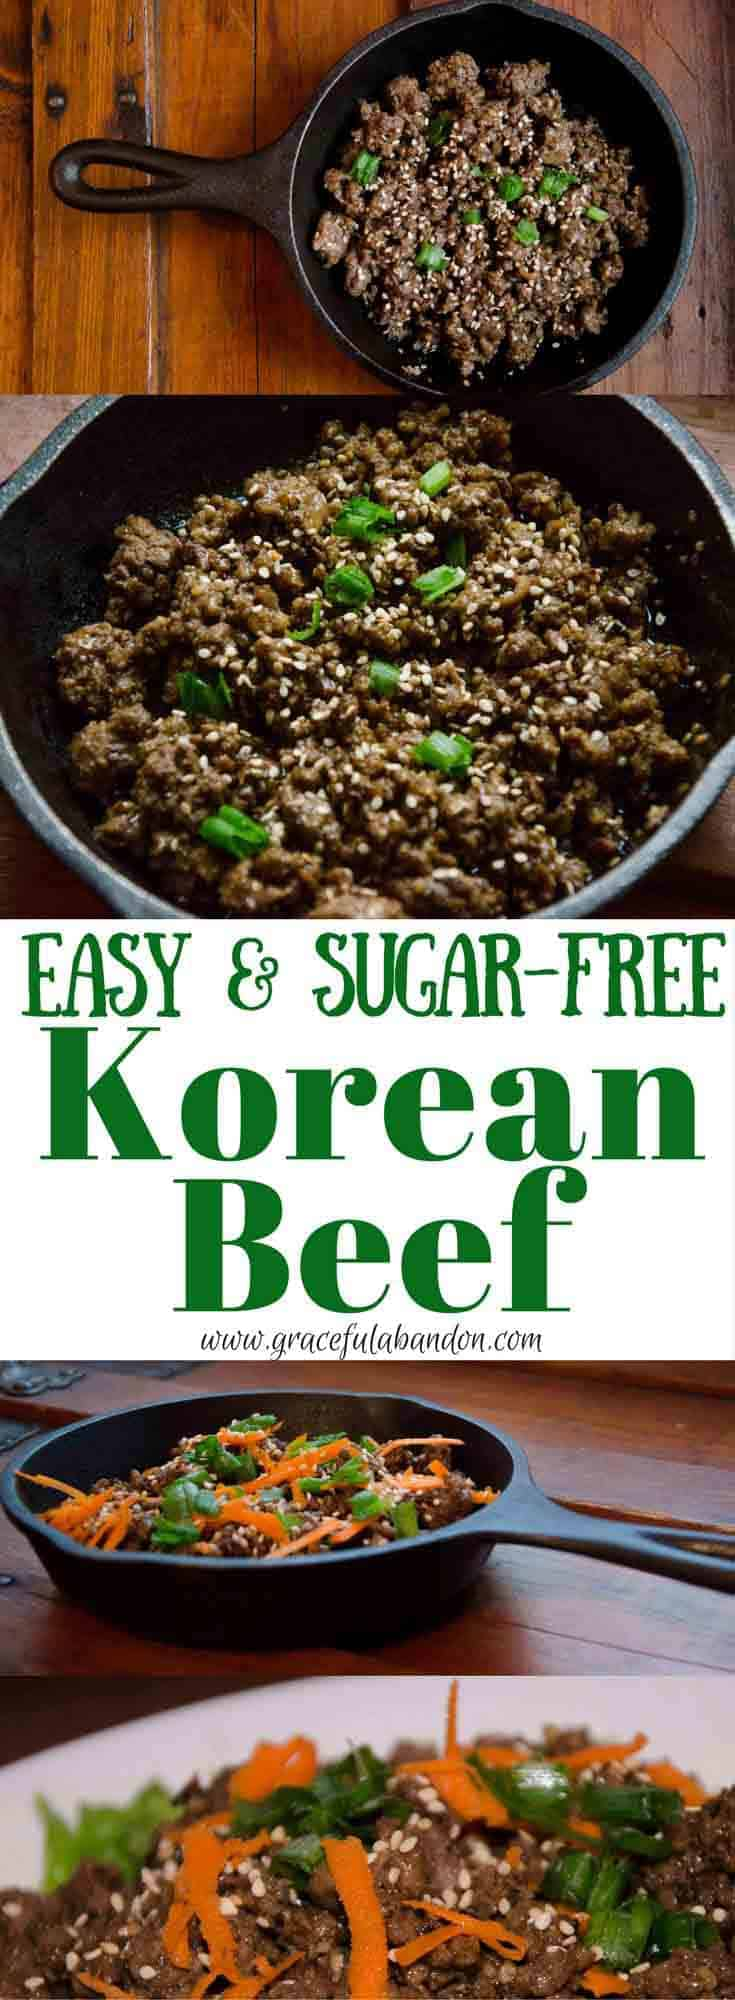 Sugar-Free, Soy-Free, Paleo Korean Beef Recipe